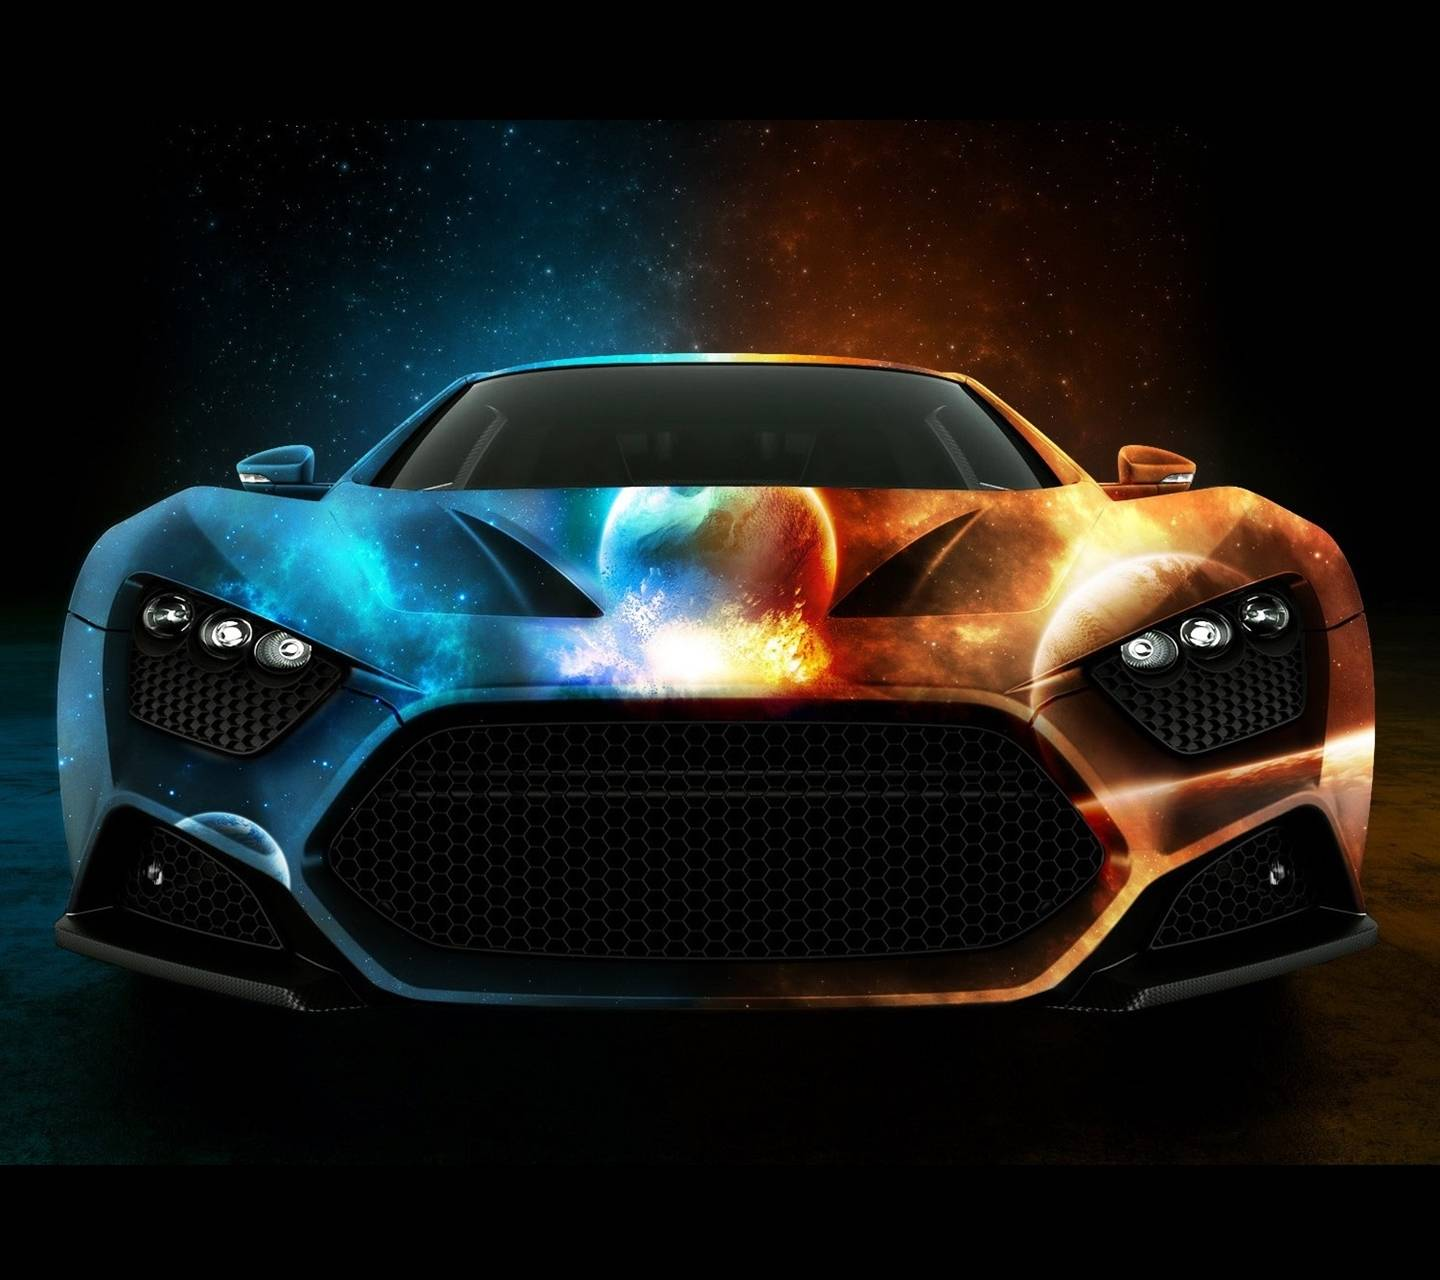 Car Galaxy Wallpapers Top Free Car Galaxy Backgrounds Wallpaperaccess